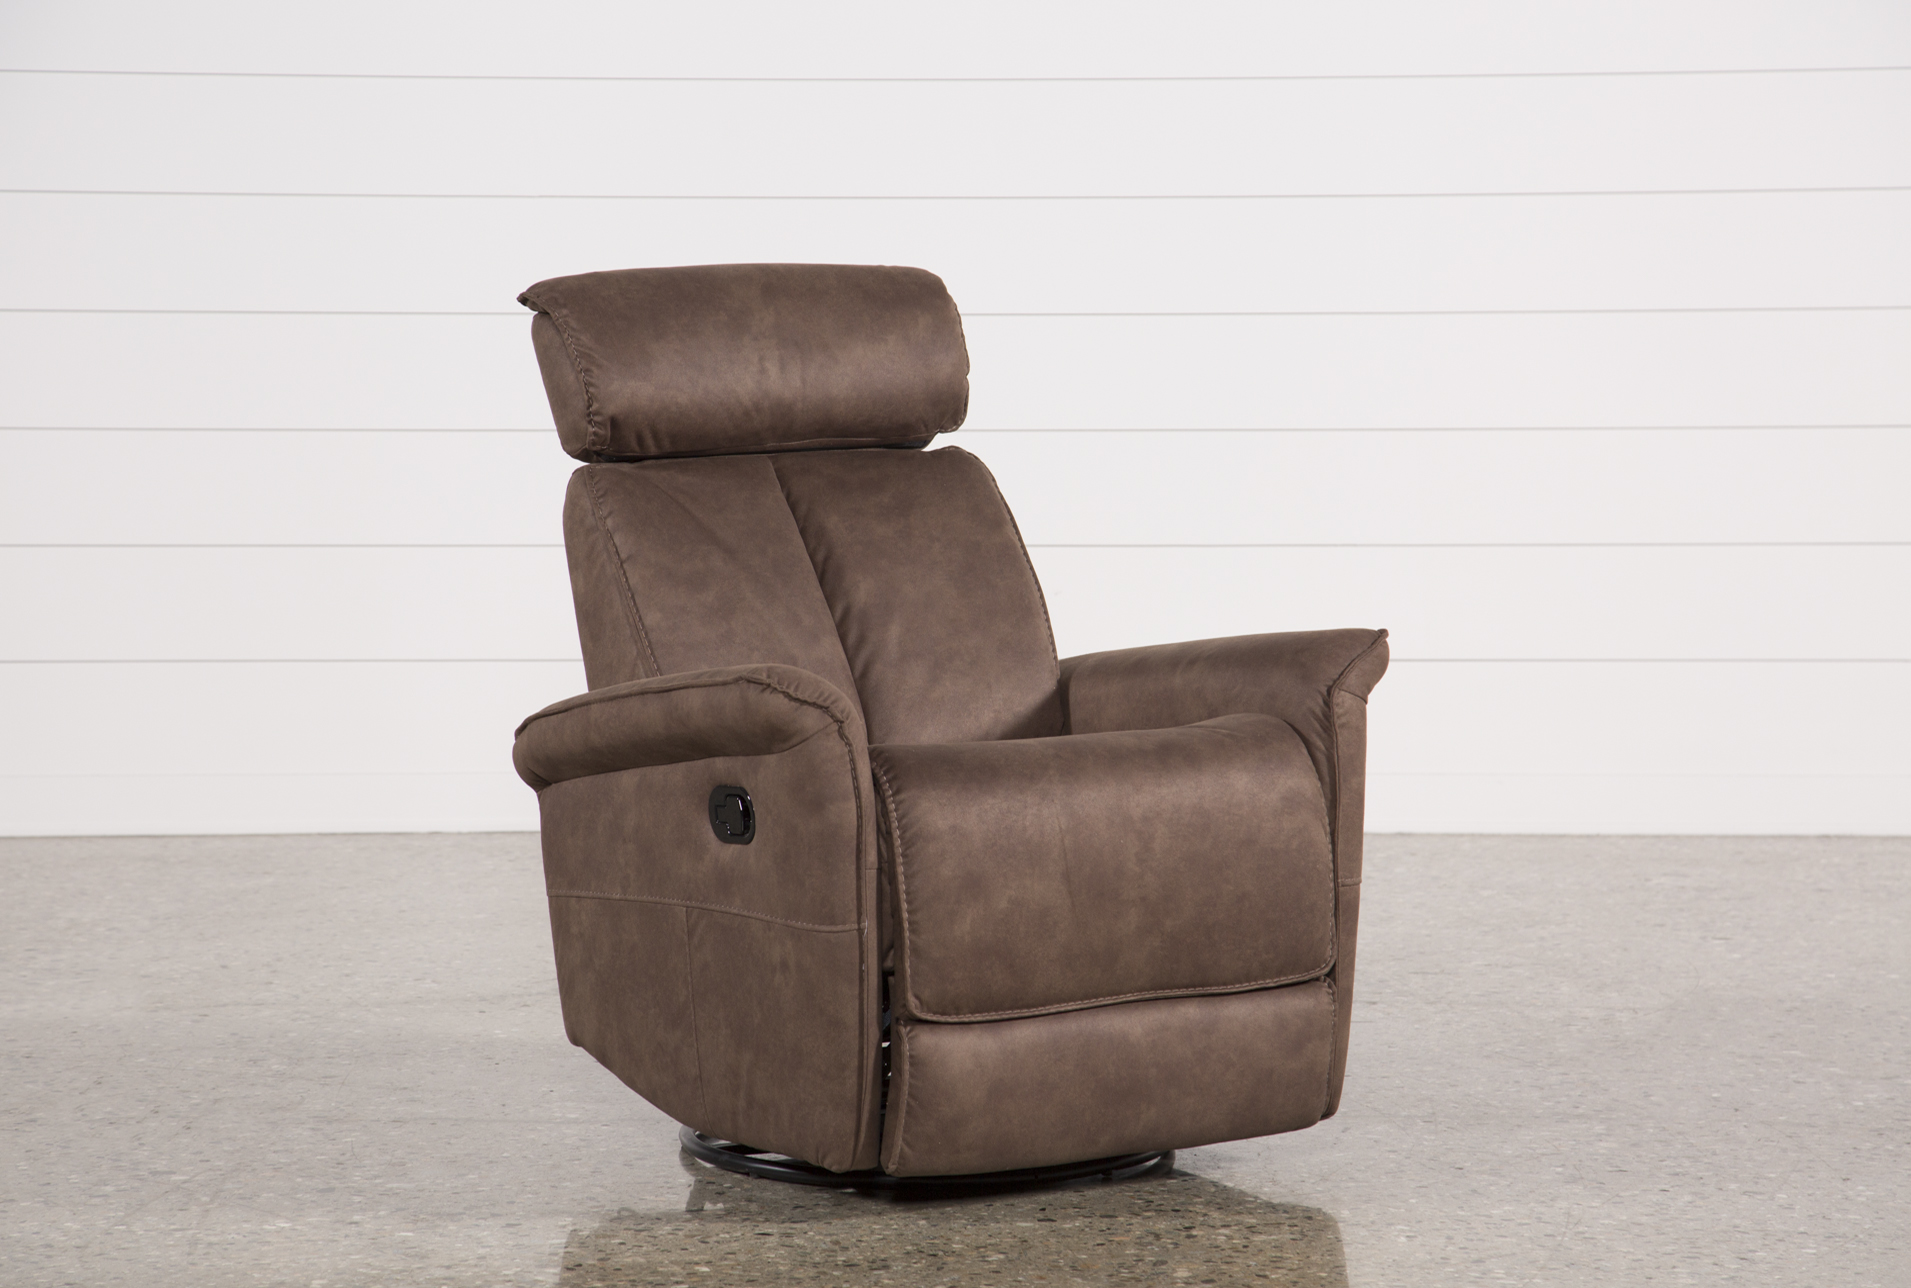 Adjustable Glider Recliner